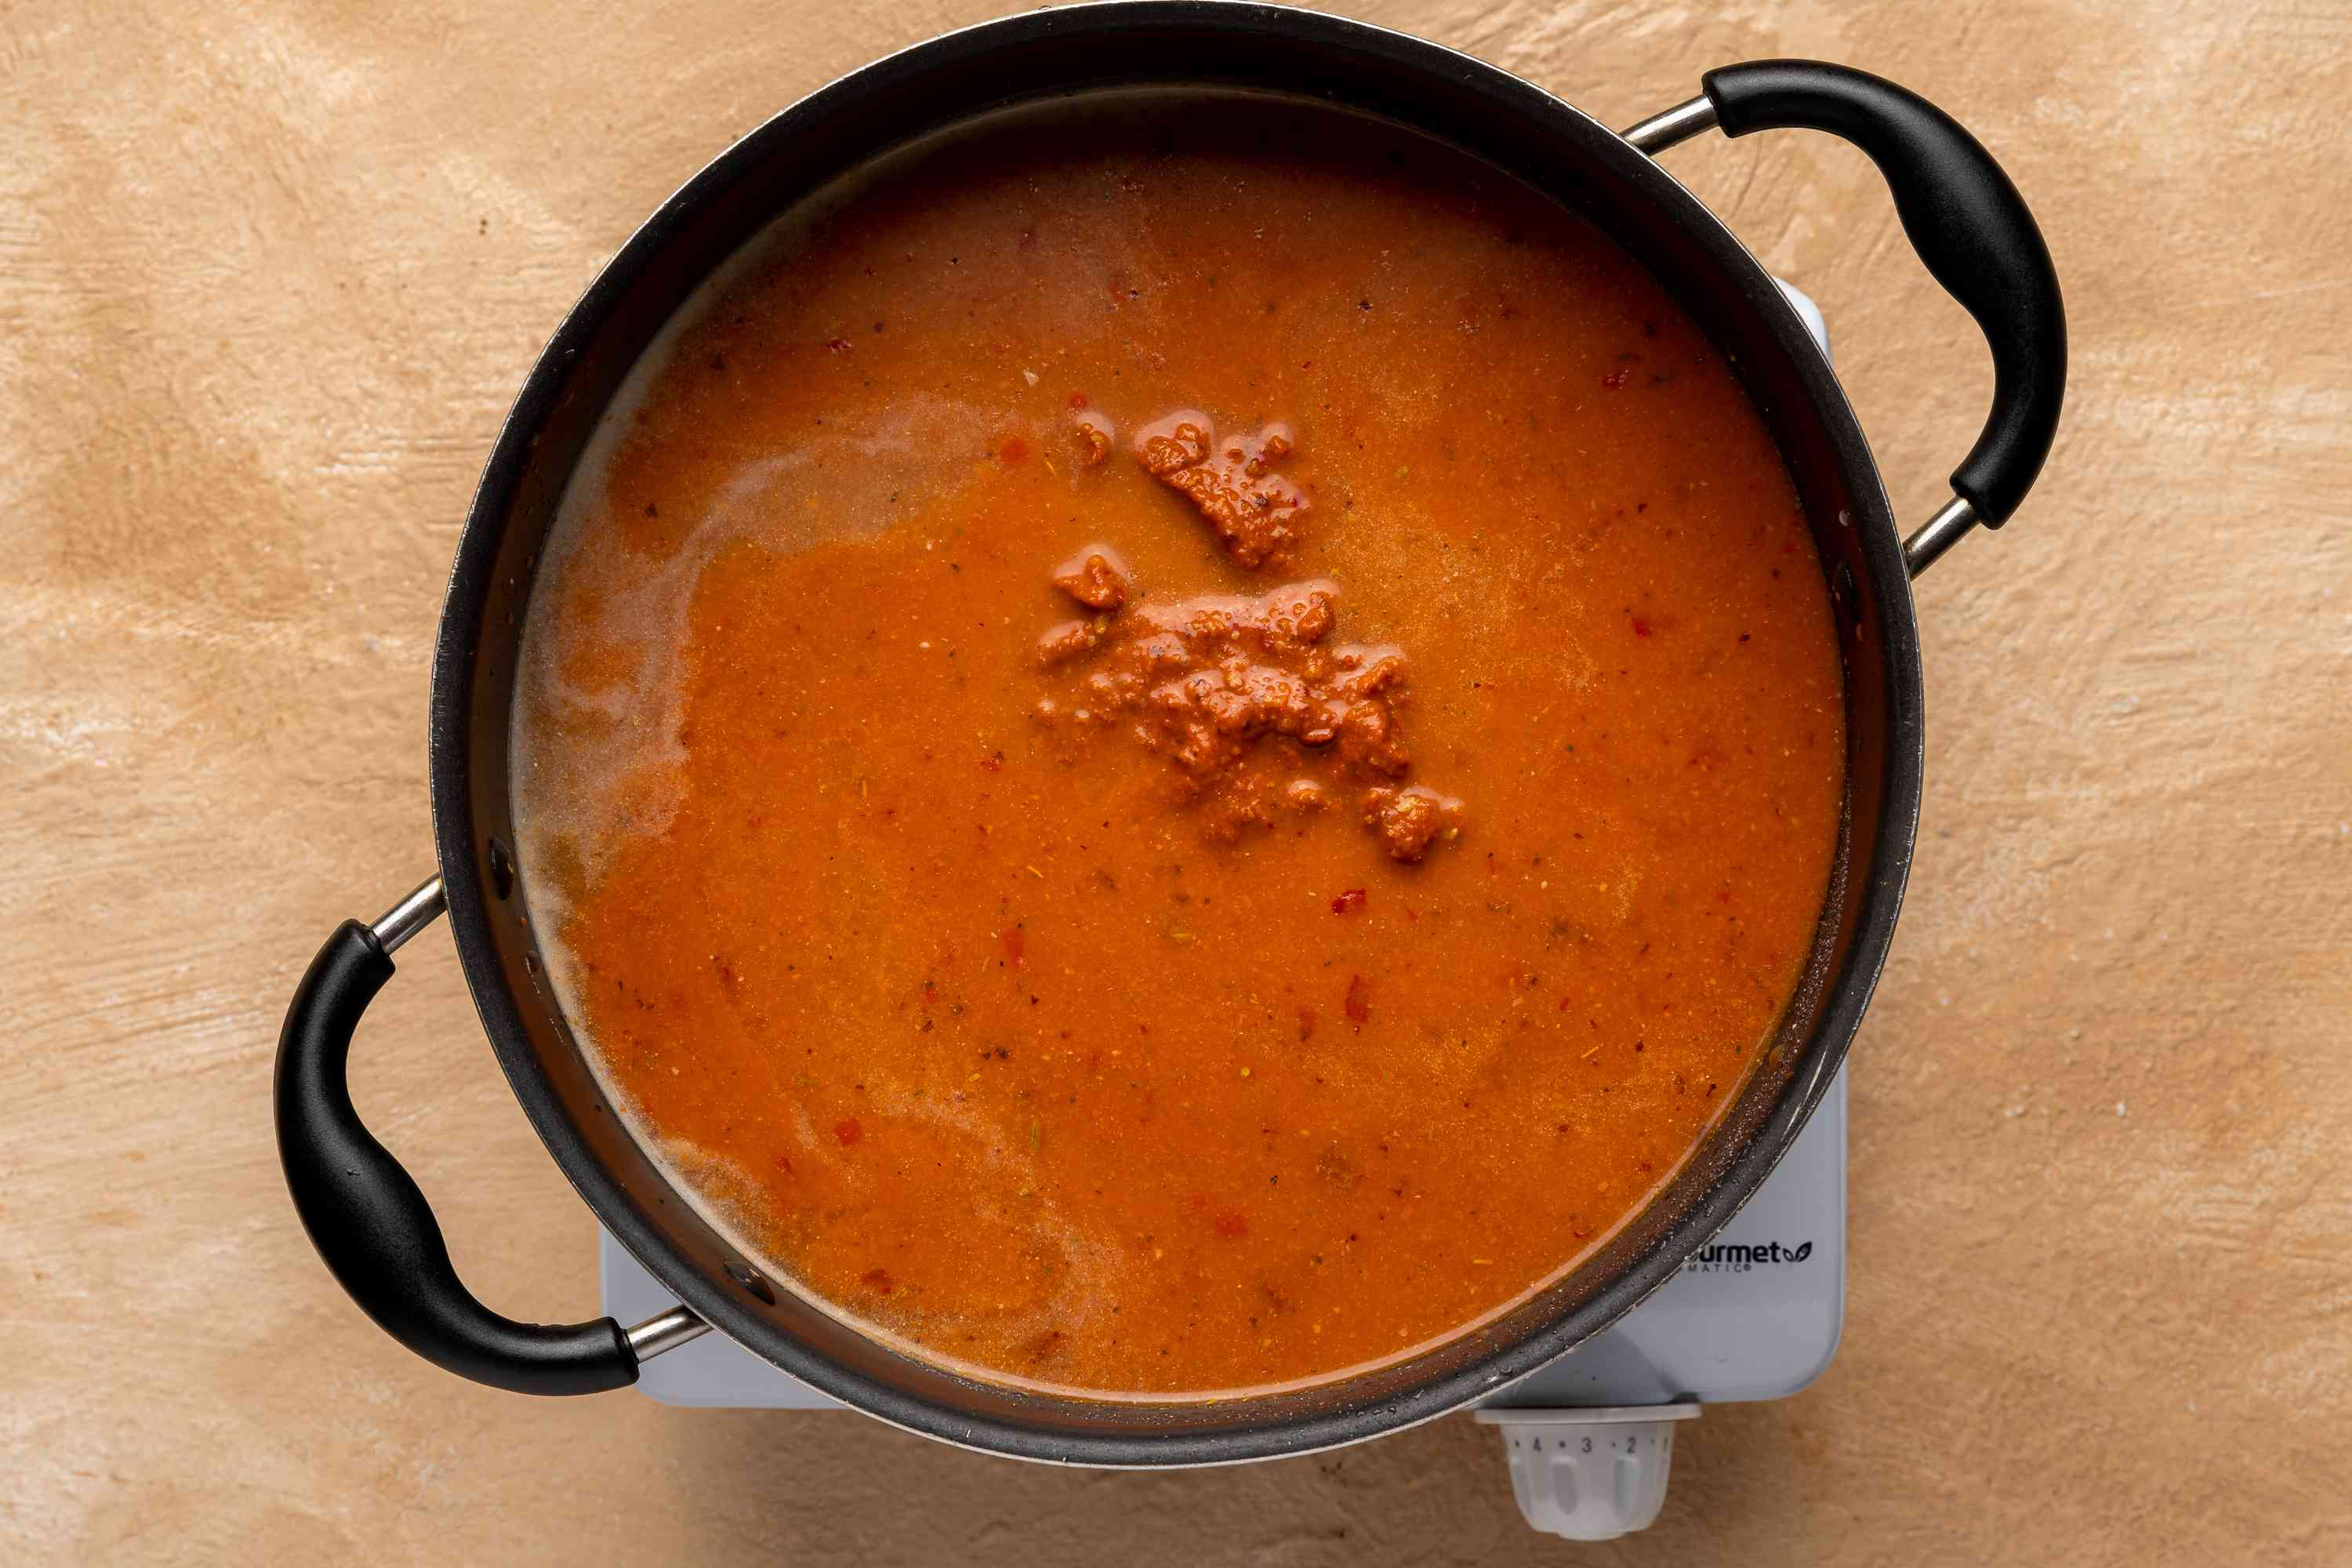 Add pureed ingredients to the pot and simmer